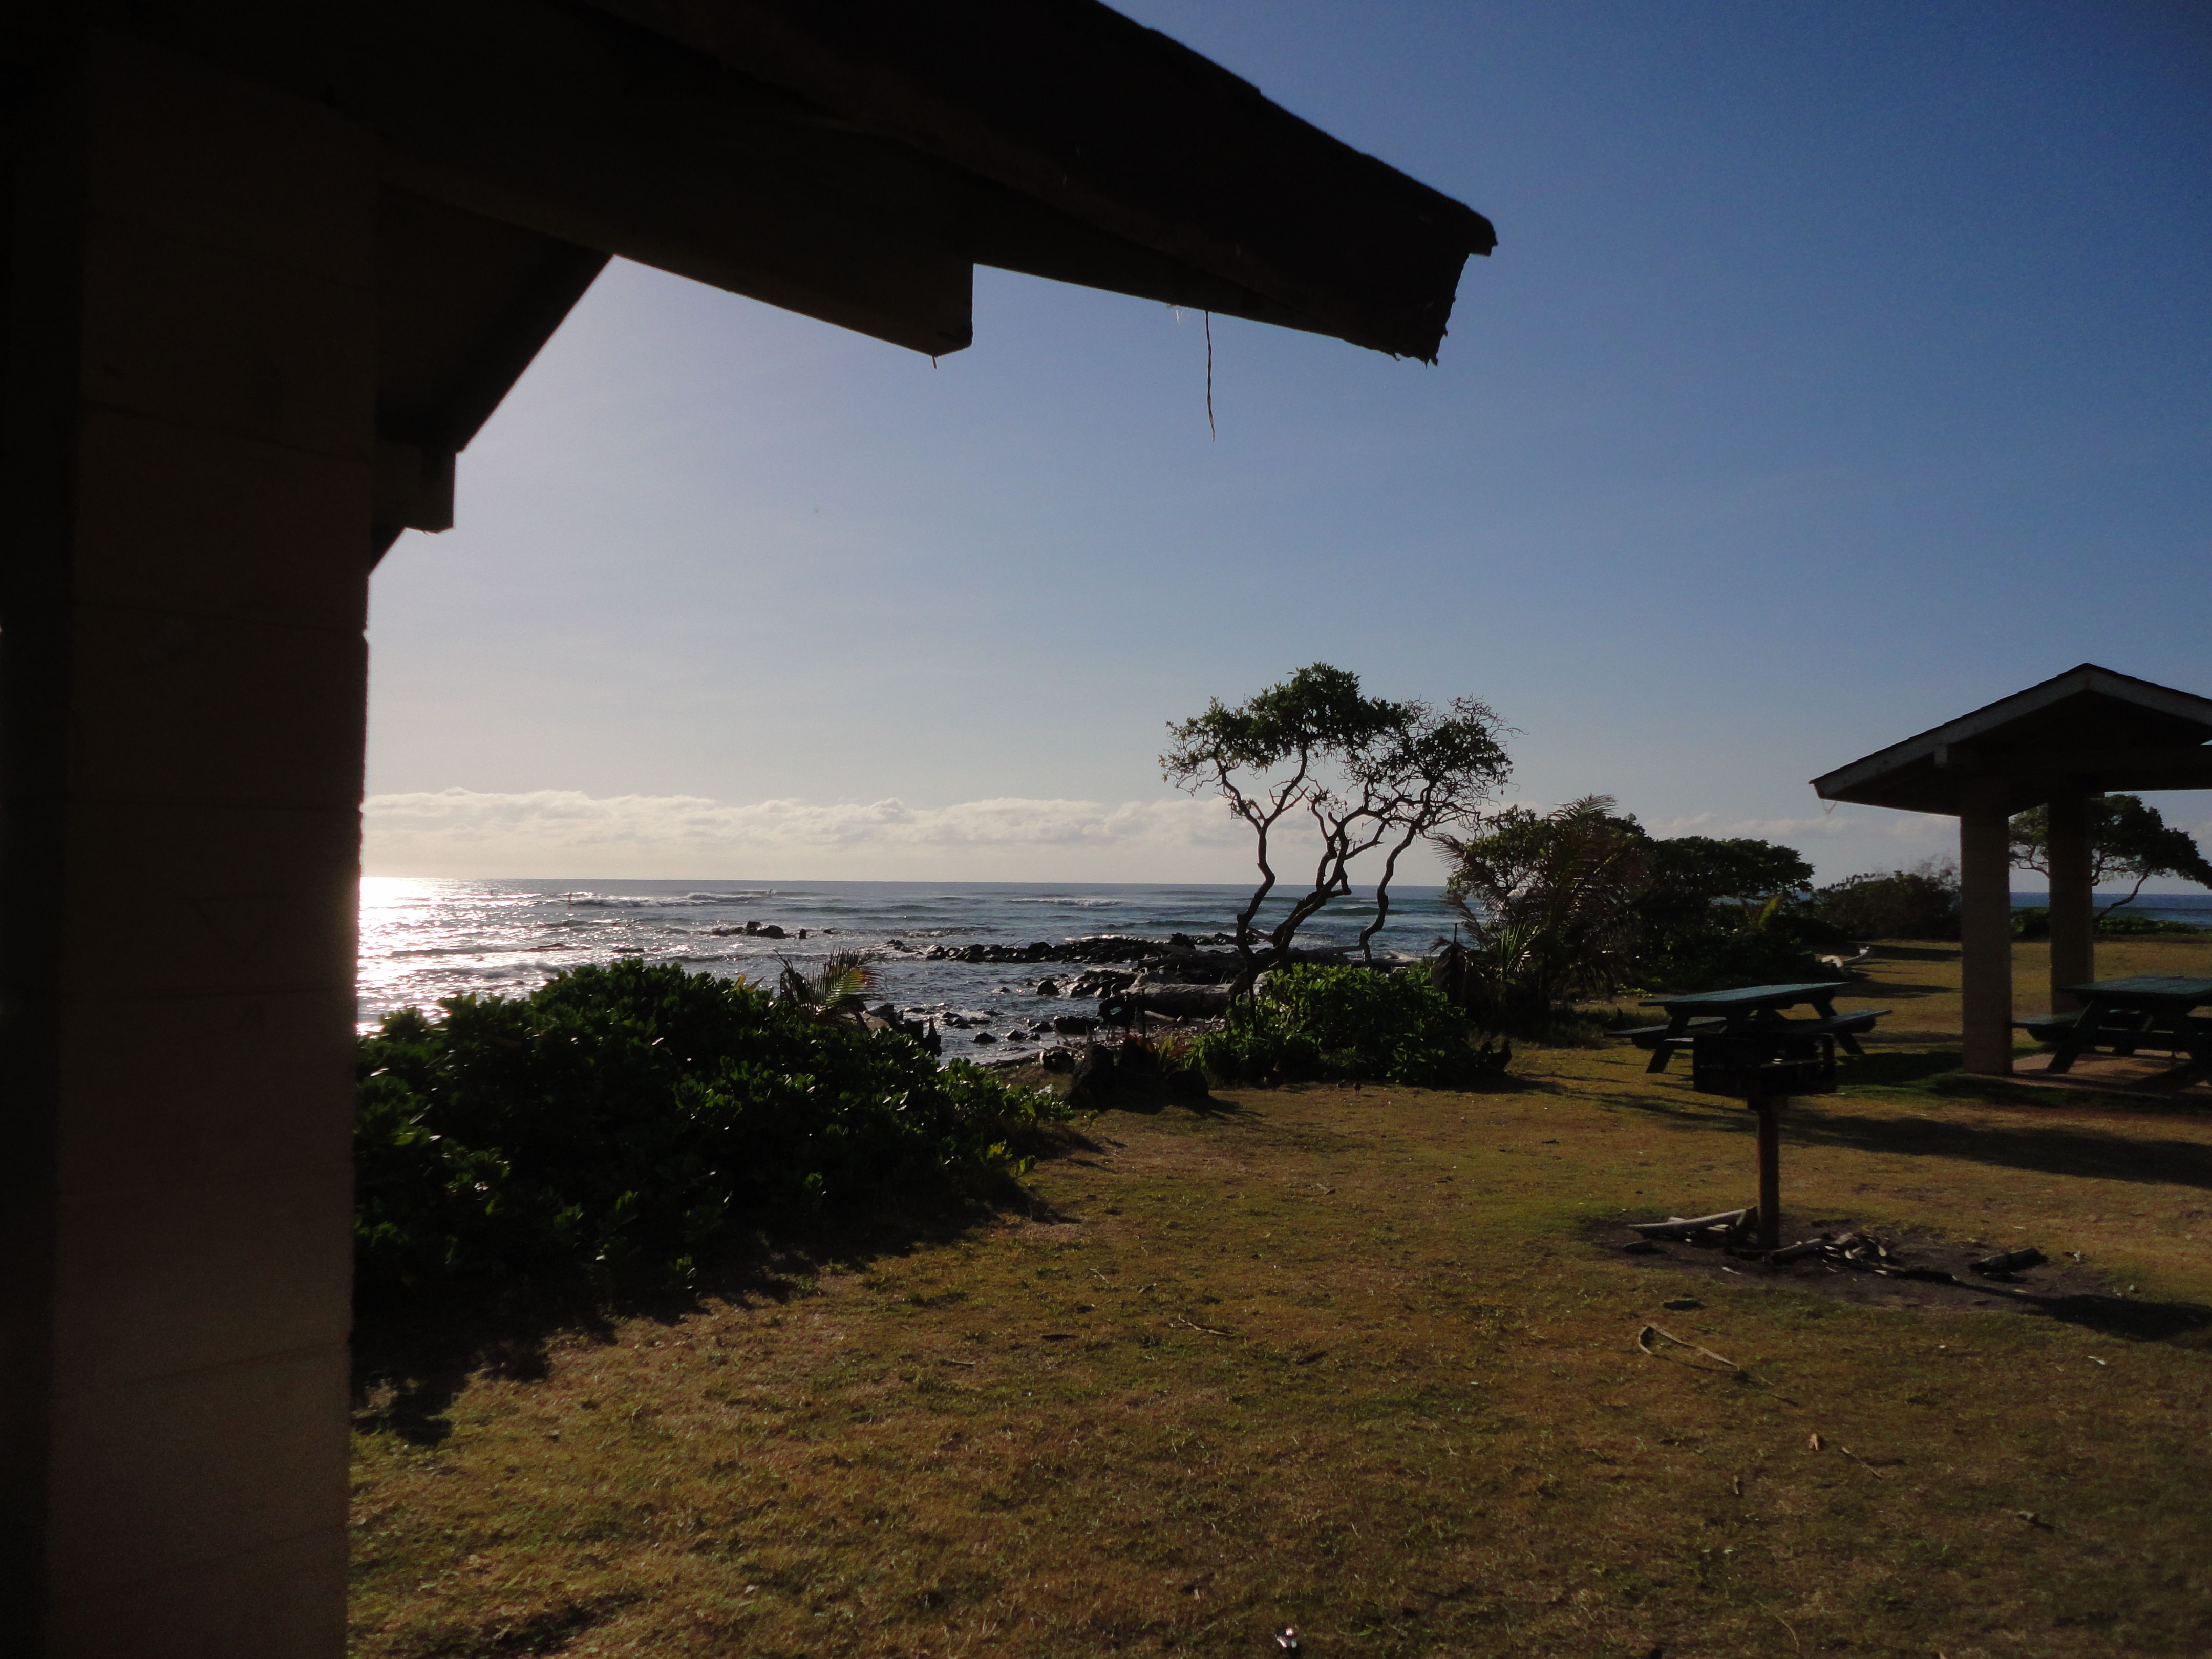 A little sun, a little ocean, what could be better than looking for trouble in paradise on Kauai?